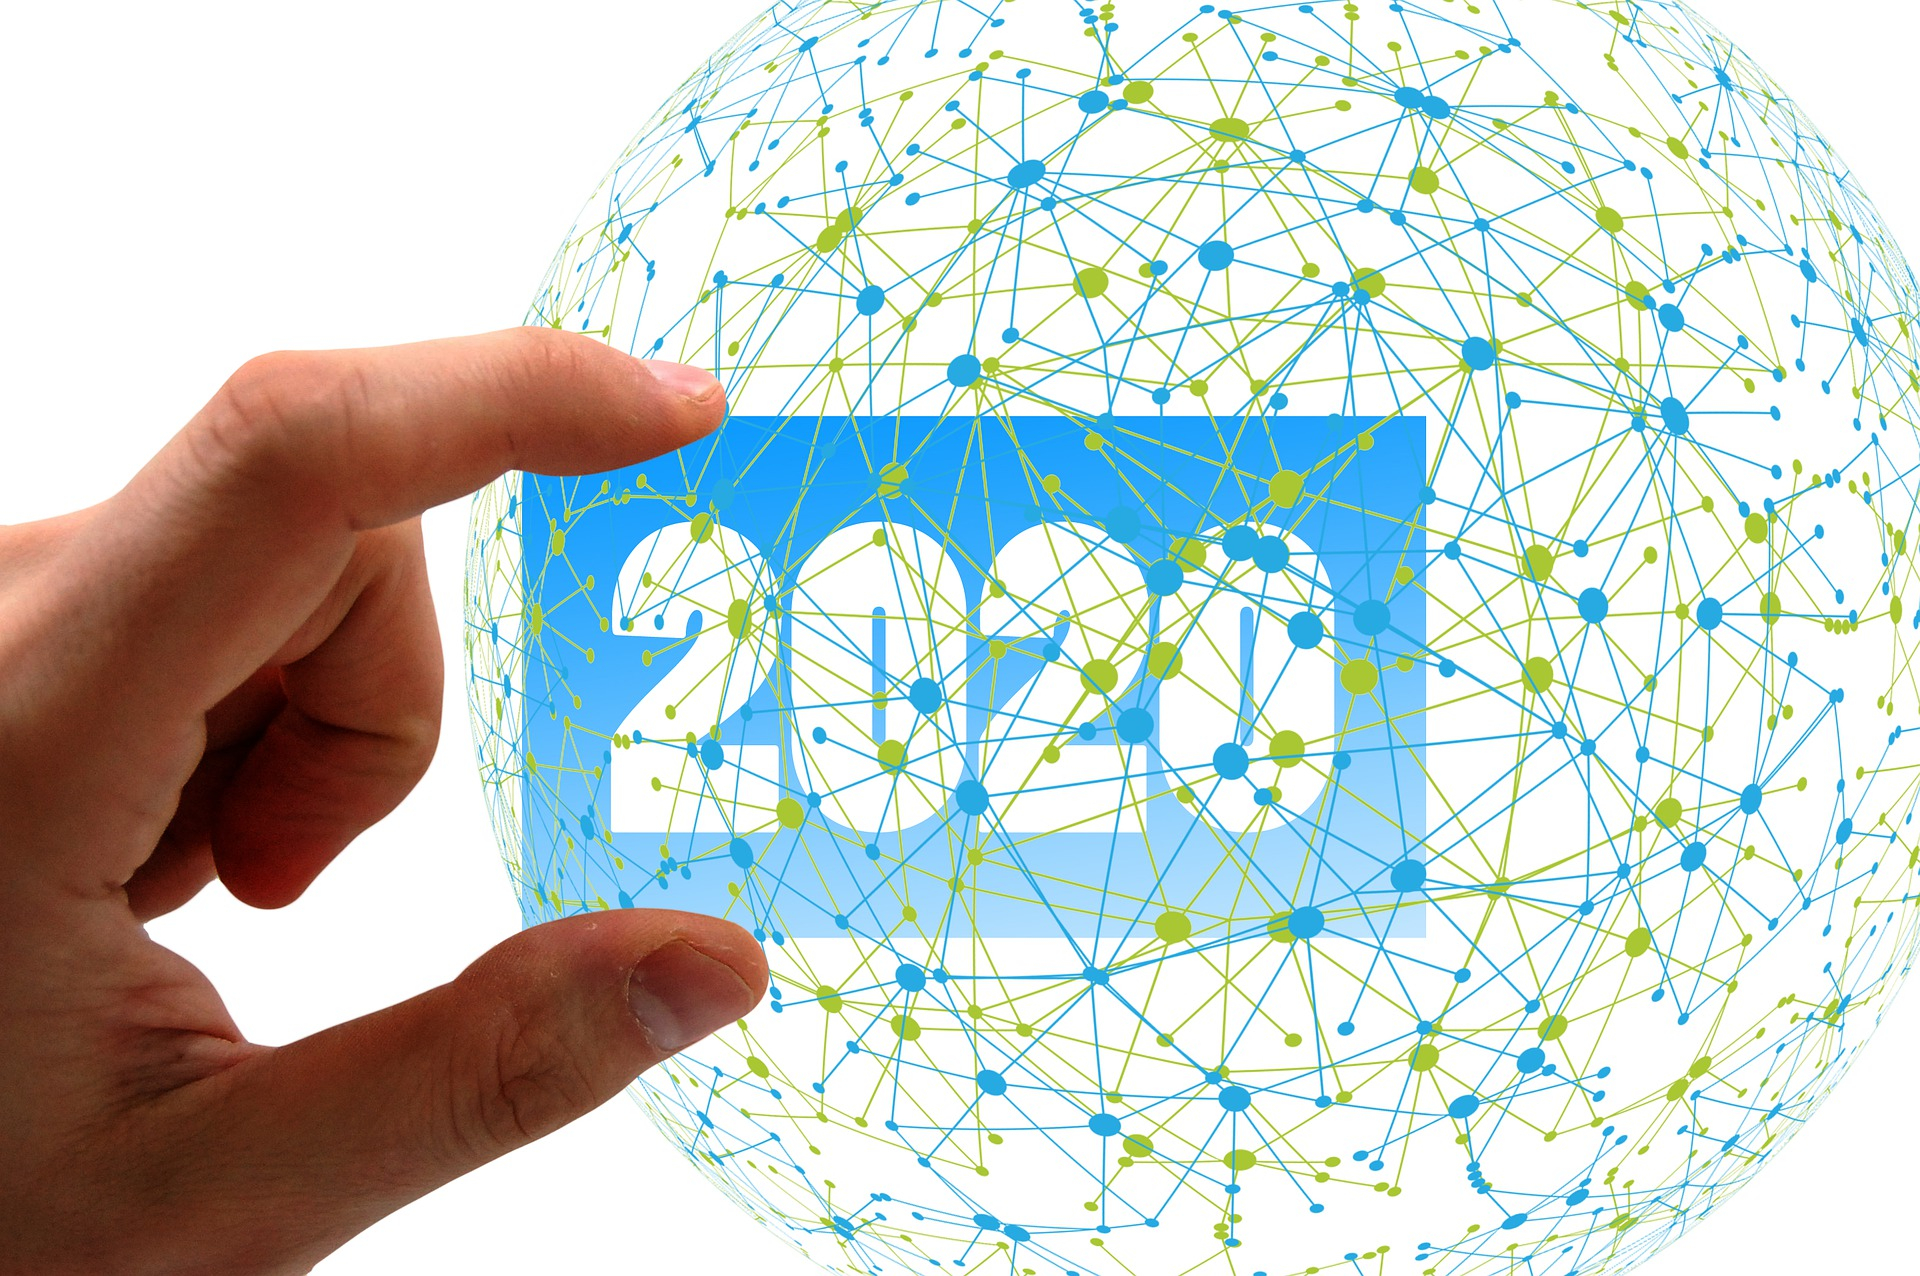 Tuesday Tip: Welcome to the 2020s